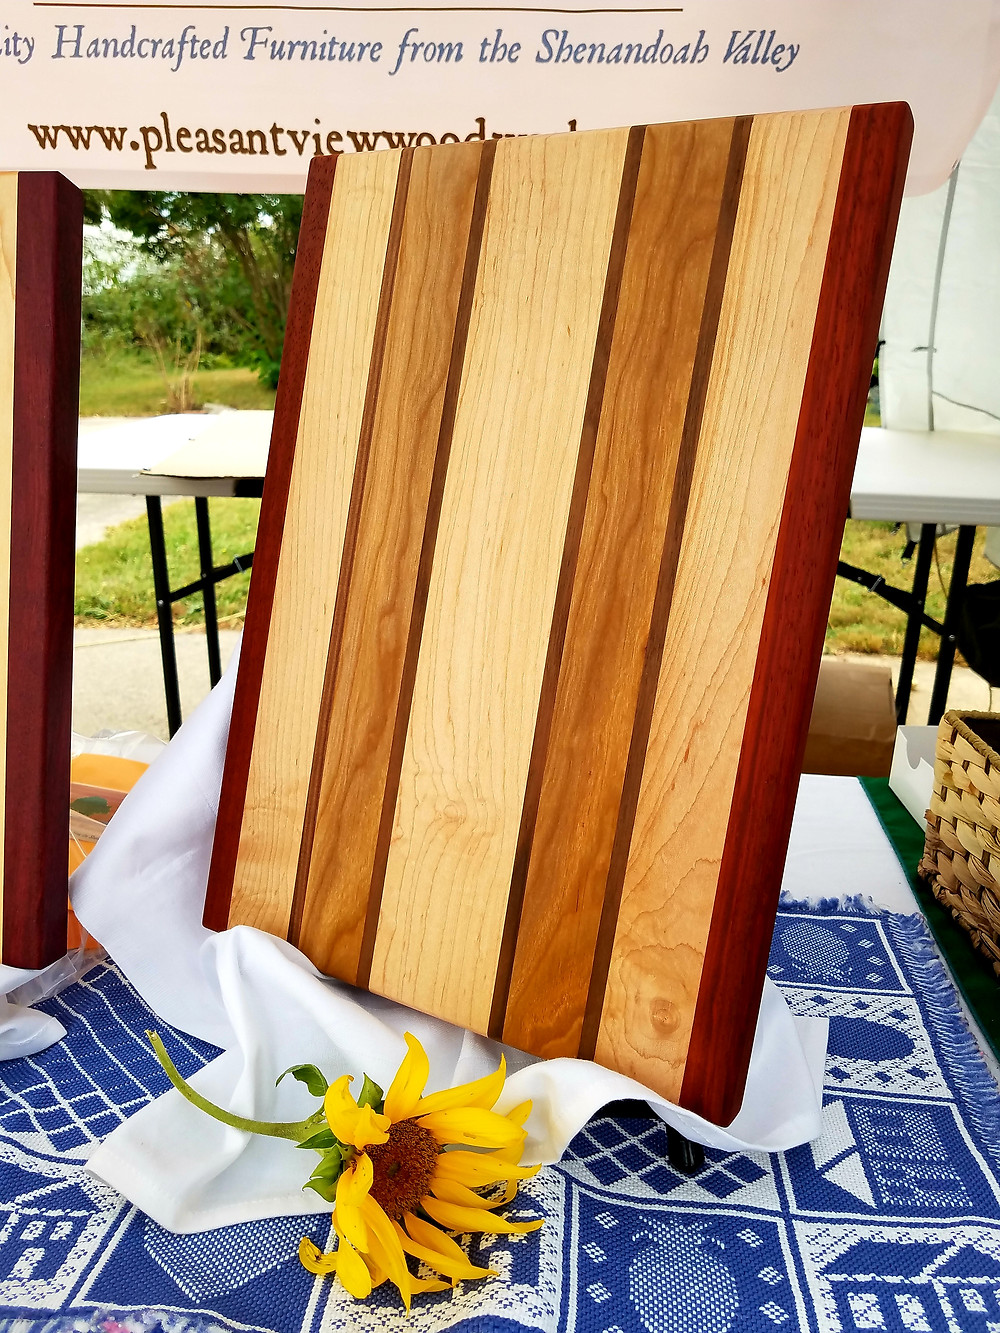 Pleasant View Woodworks cutting board